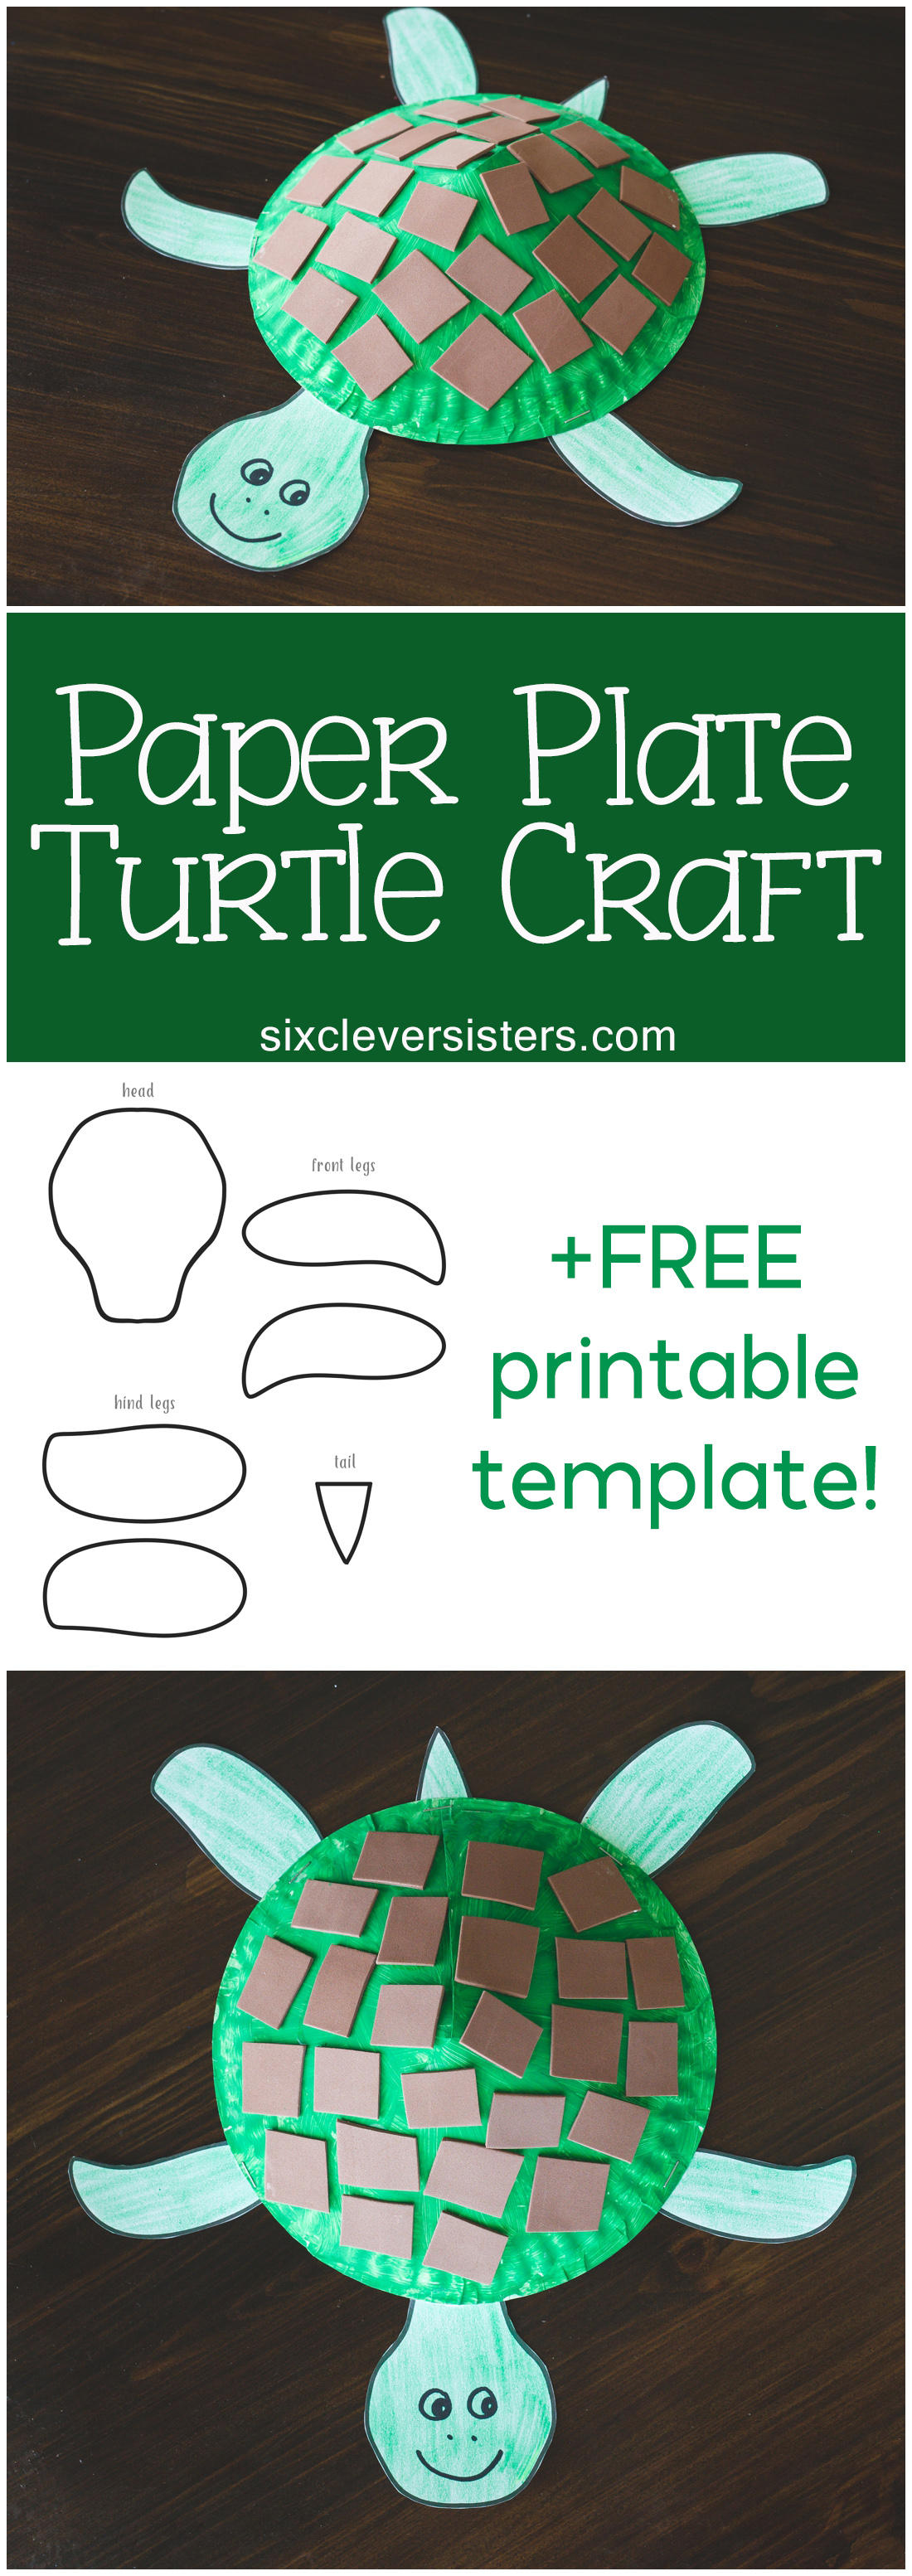 Inventive image in free printable paper crafts